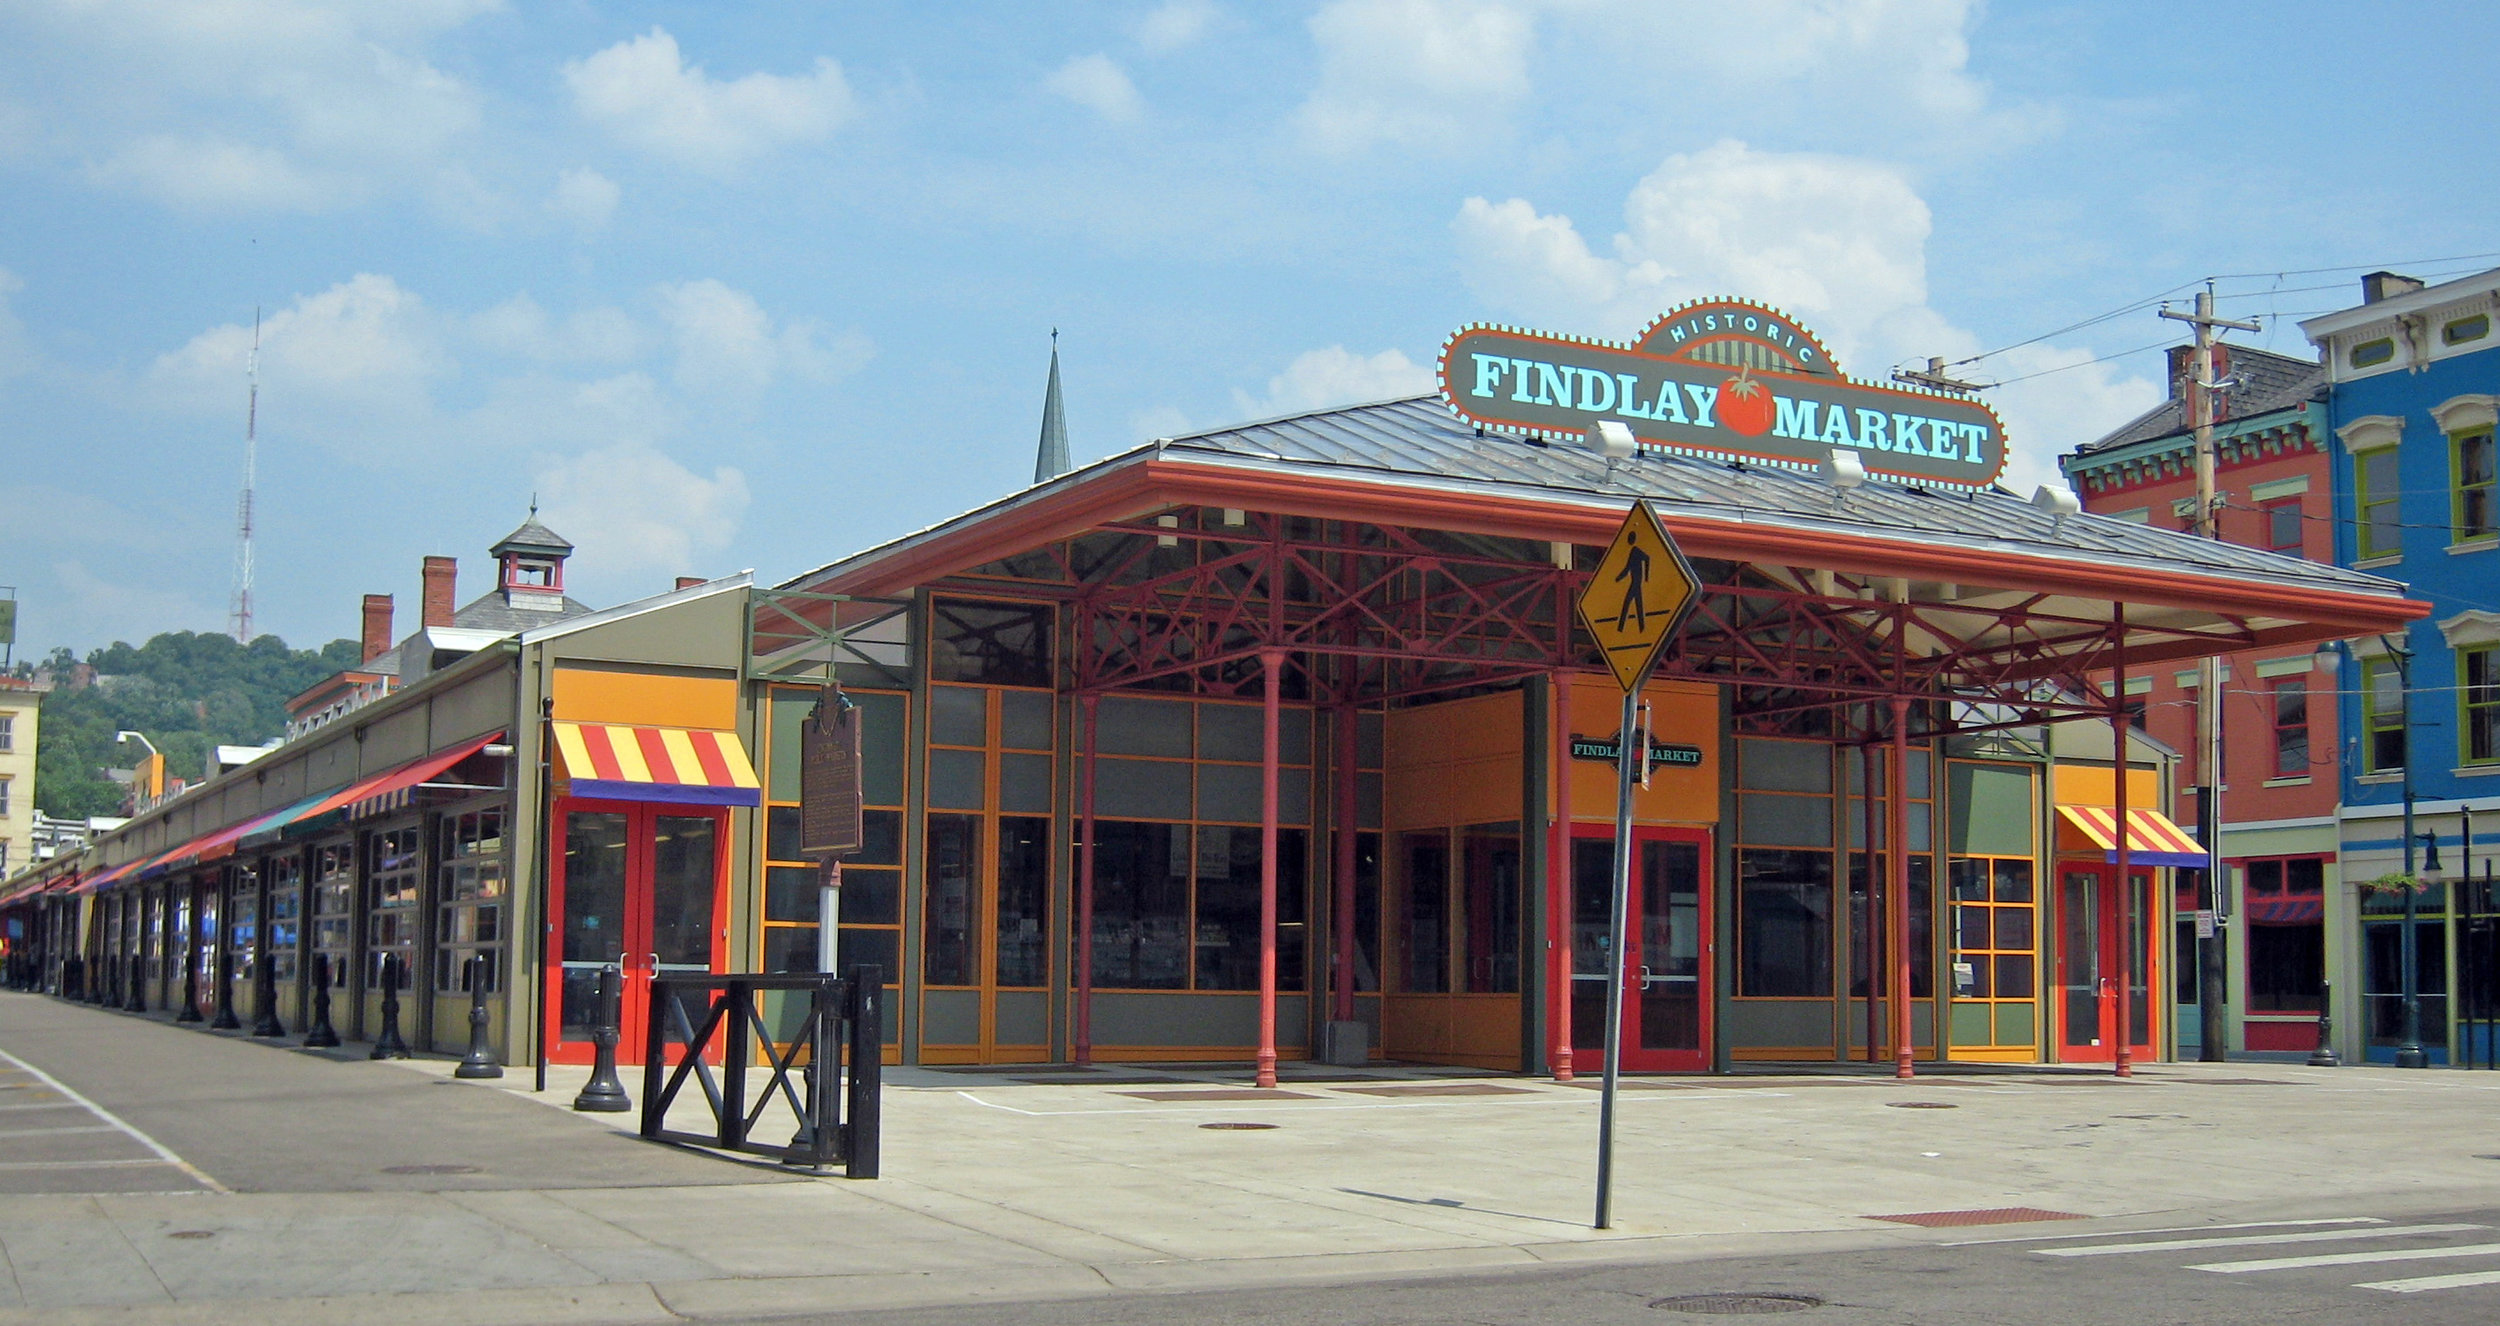 Findlay_Market_Cincinnati.JPG